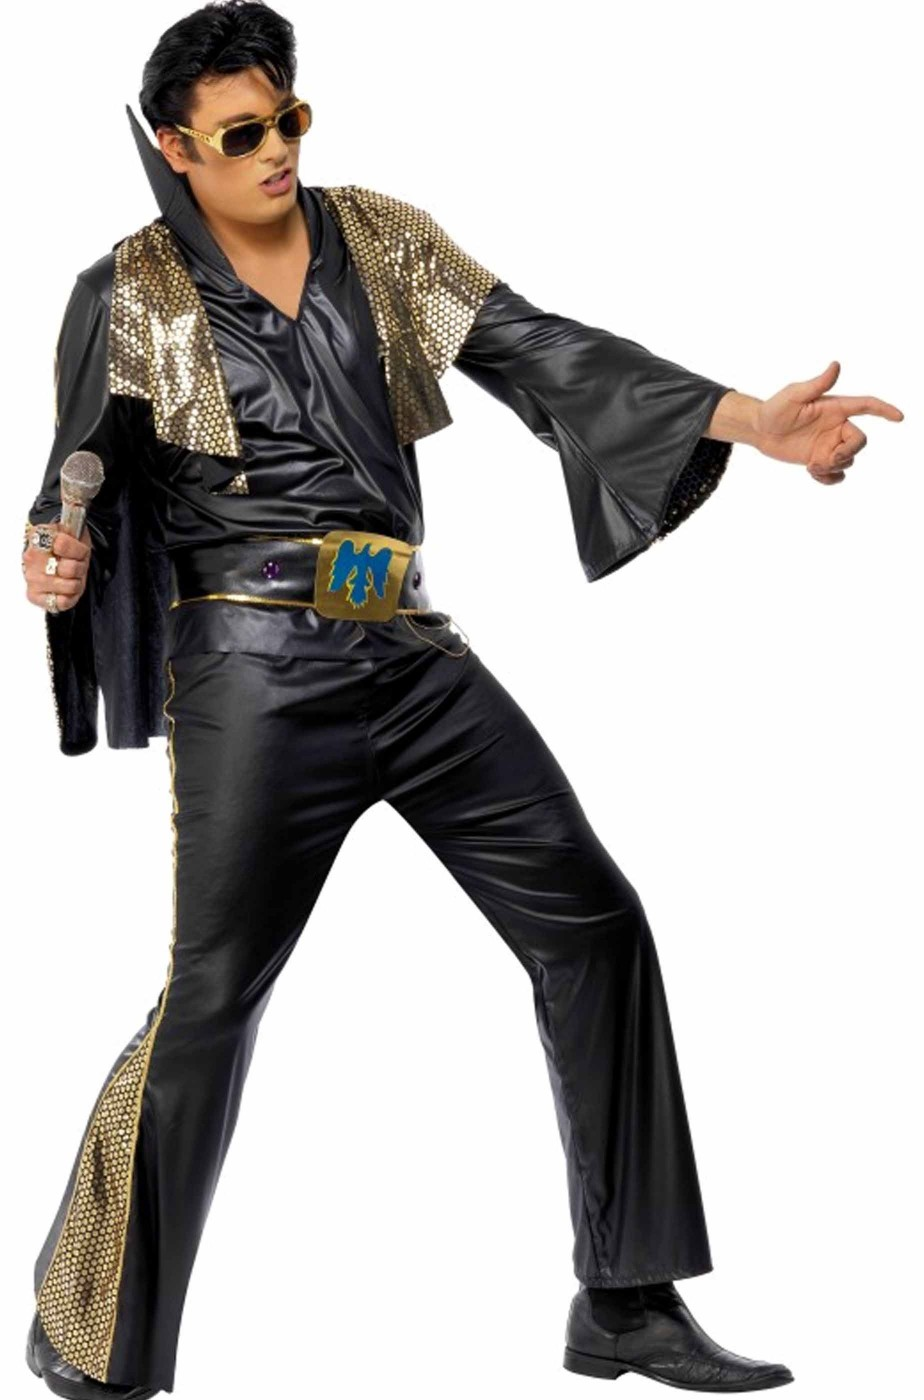 Costume carnevale adulto Elvis Presley The King nero e oro con mantella